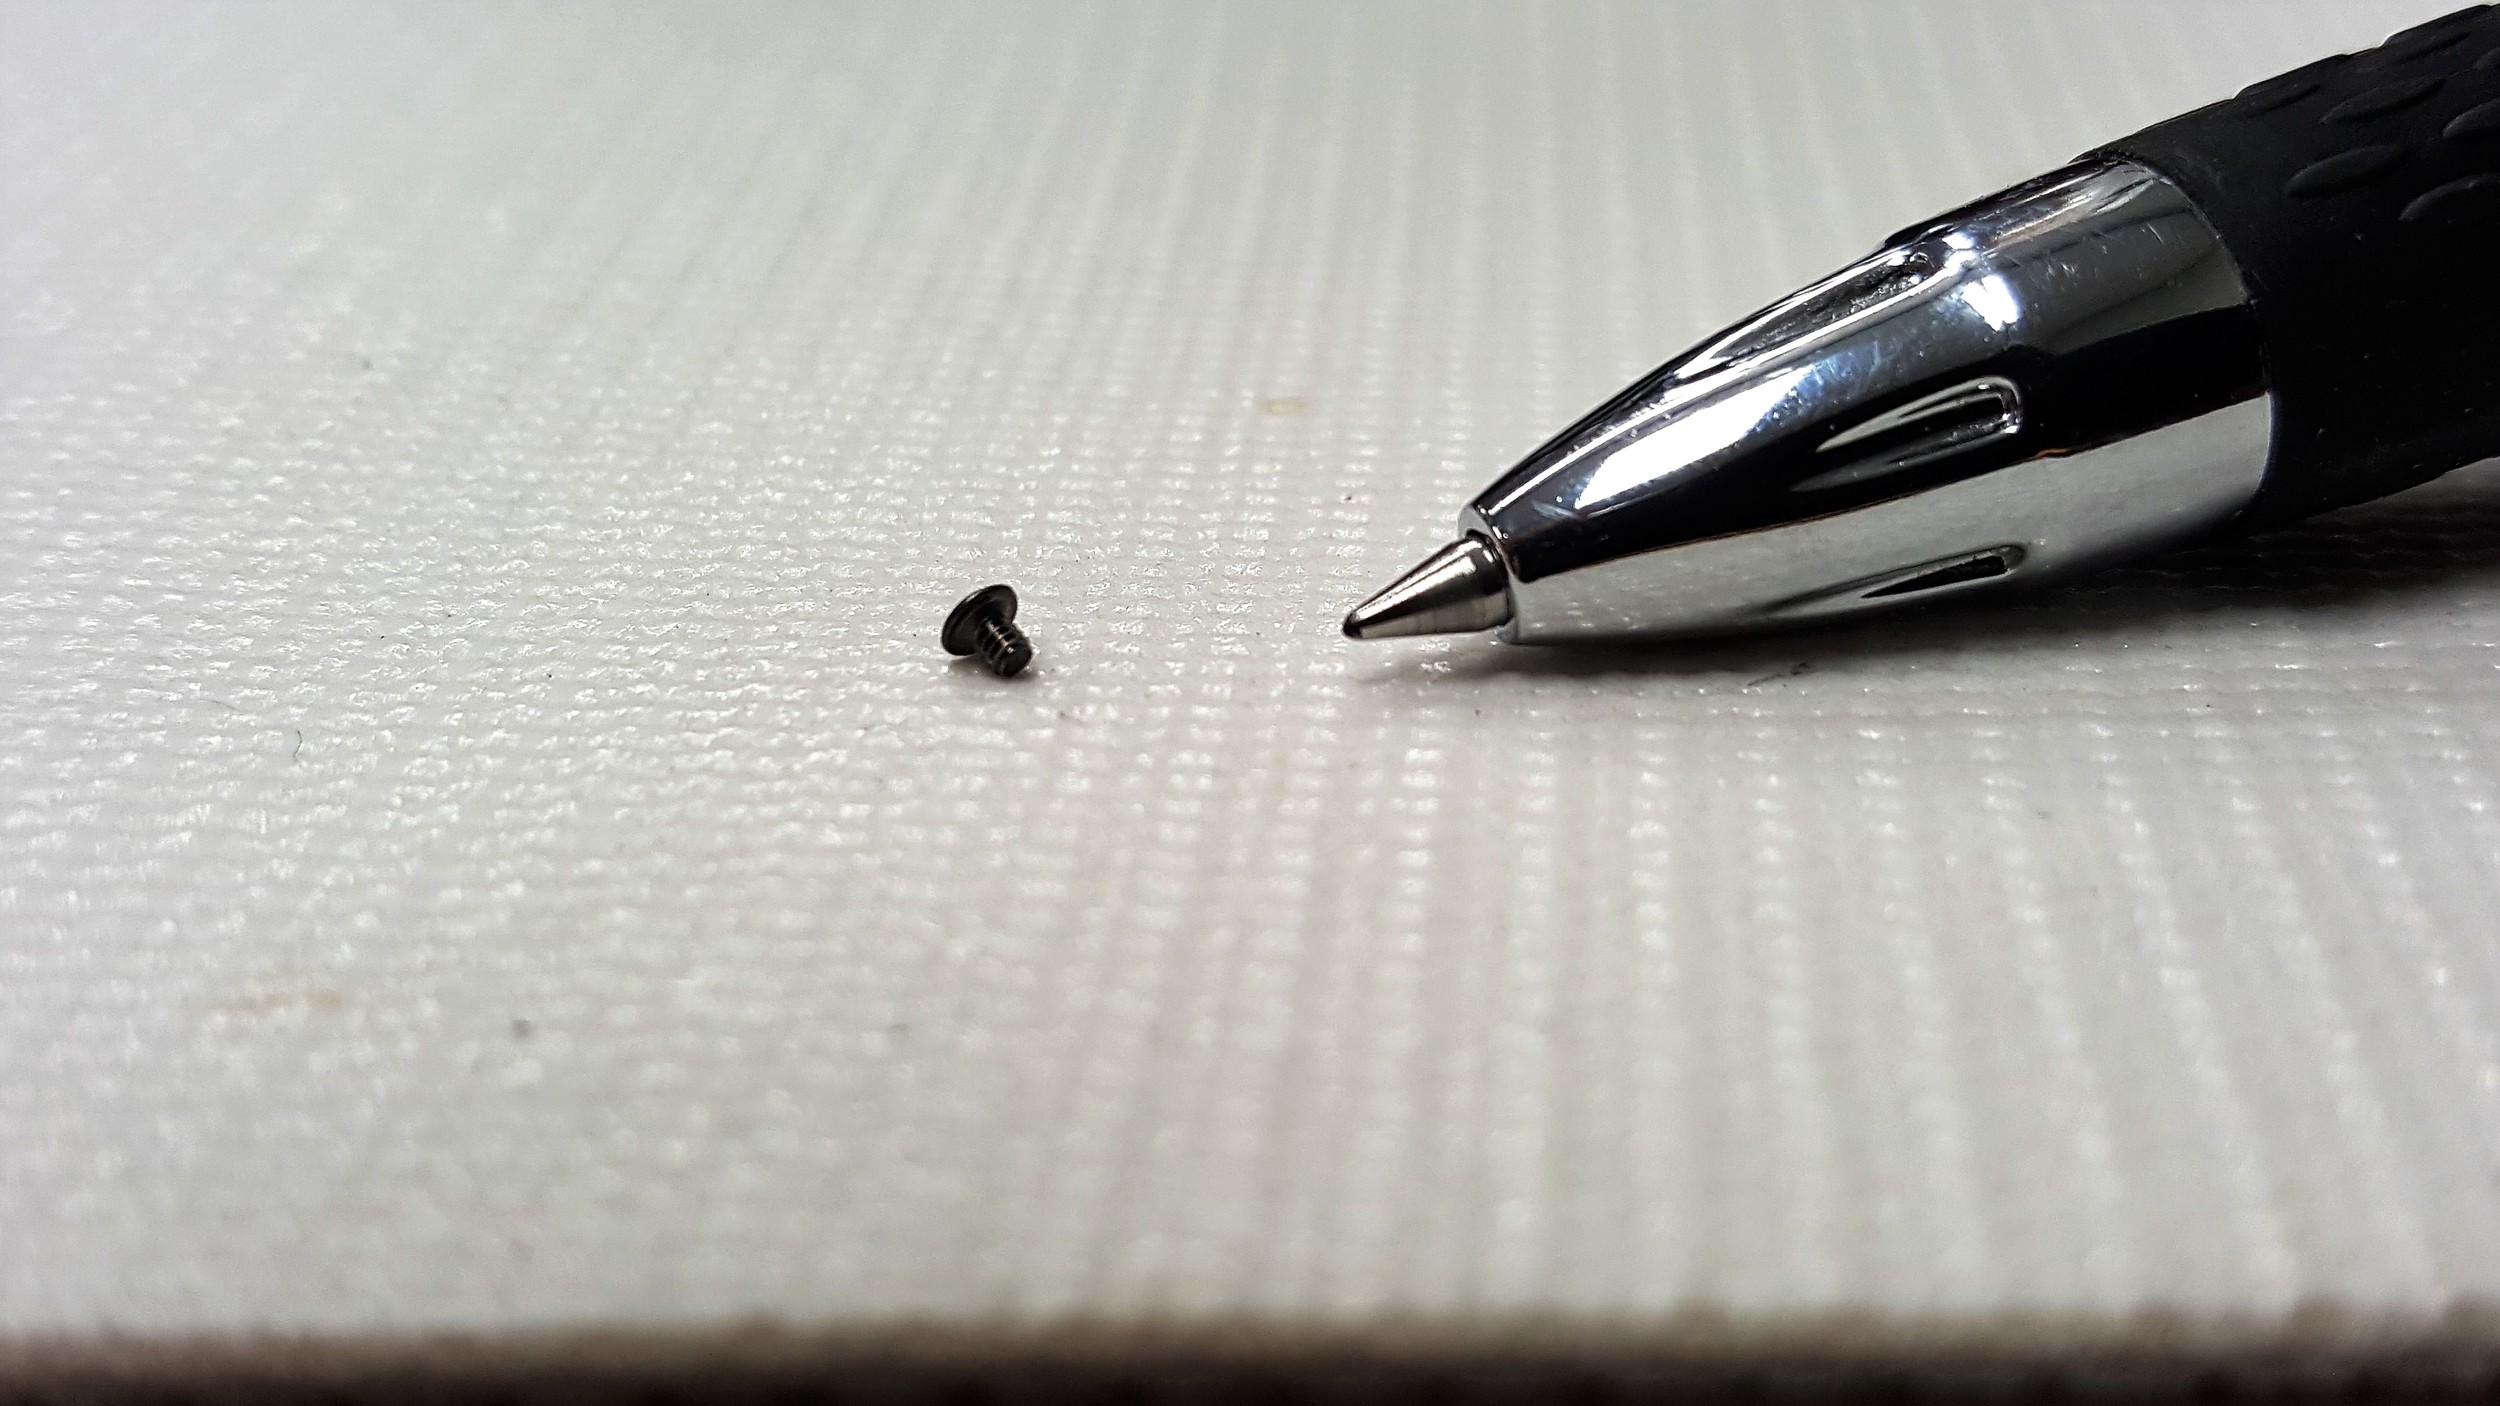 These tiny fasteners are easy to lose, and can cause big problems